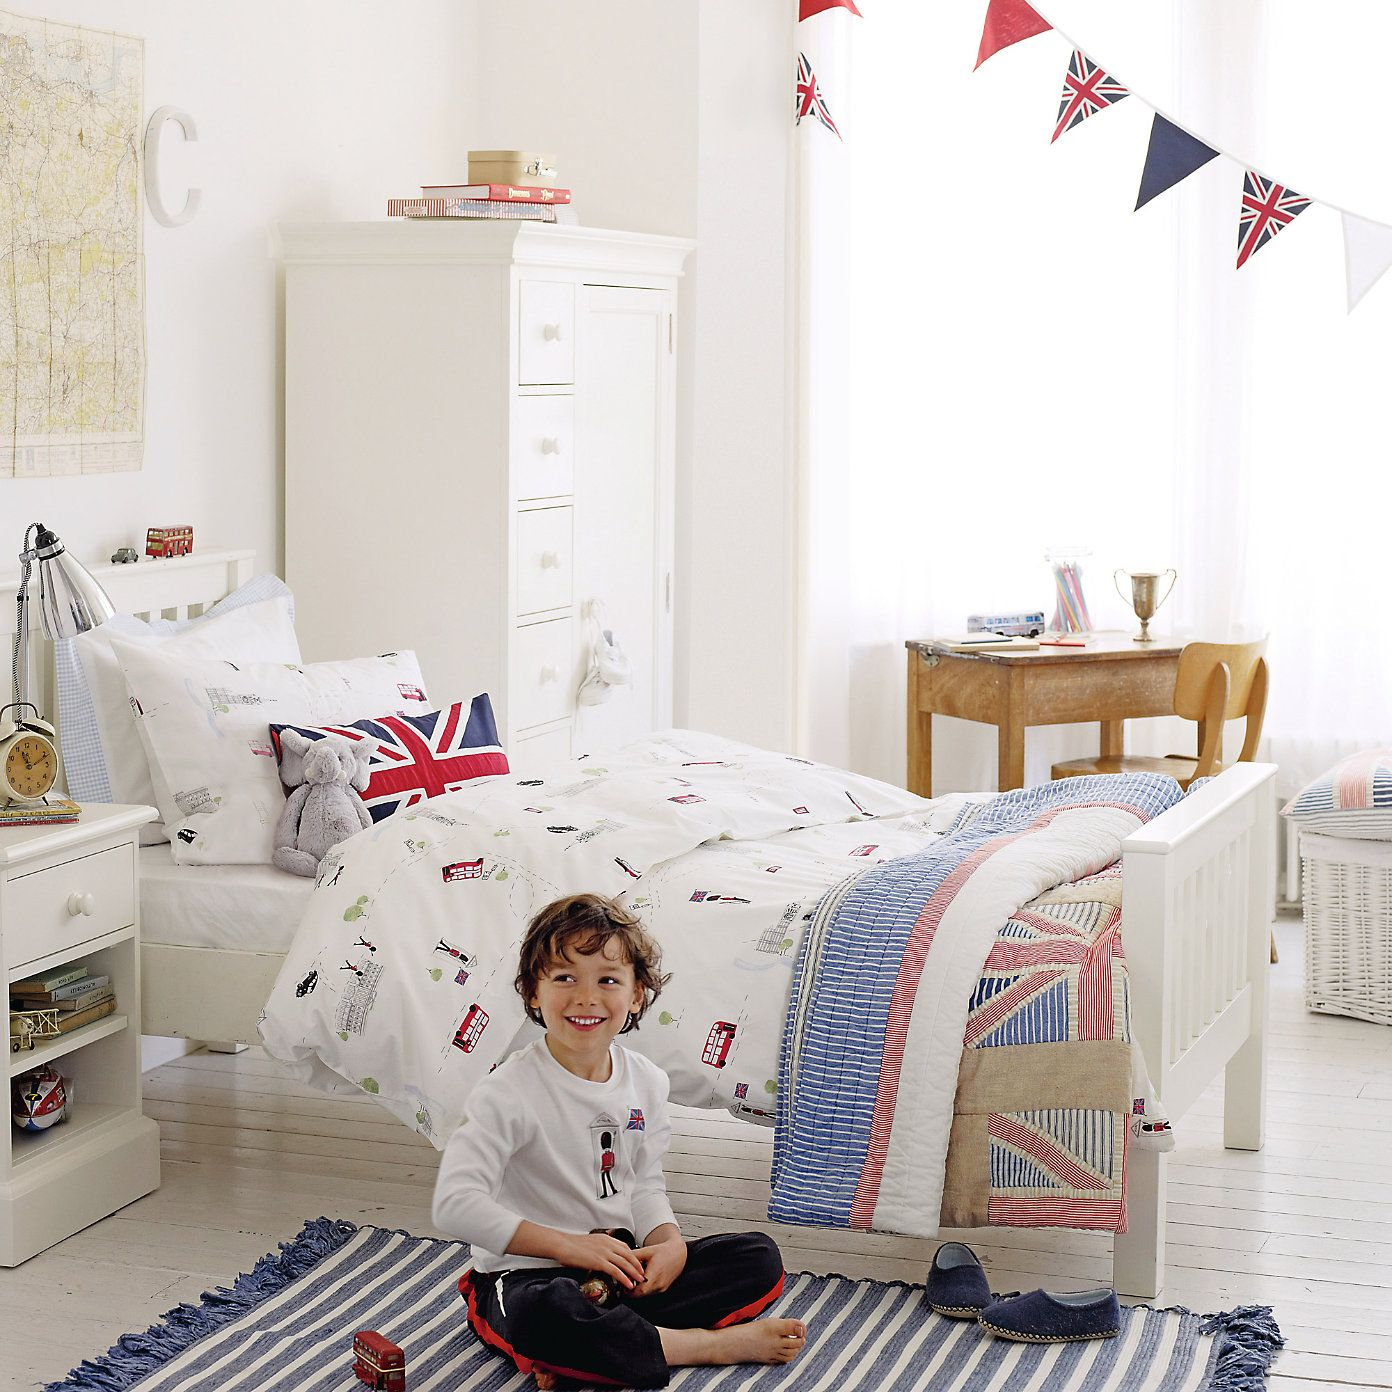 Buy Furniture Shelves Storage Classic Junior Wardrobe From The White Company Childrens Bedroom Furniture London Bedroom Themes White Company Bedroom